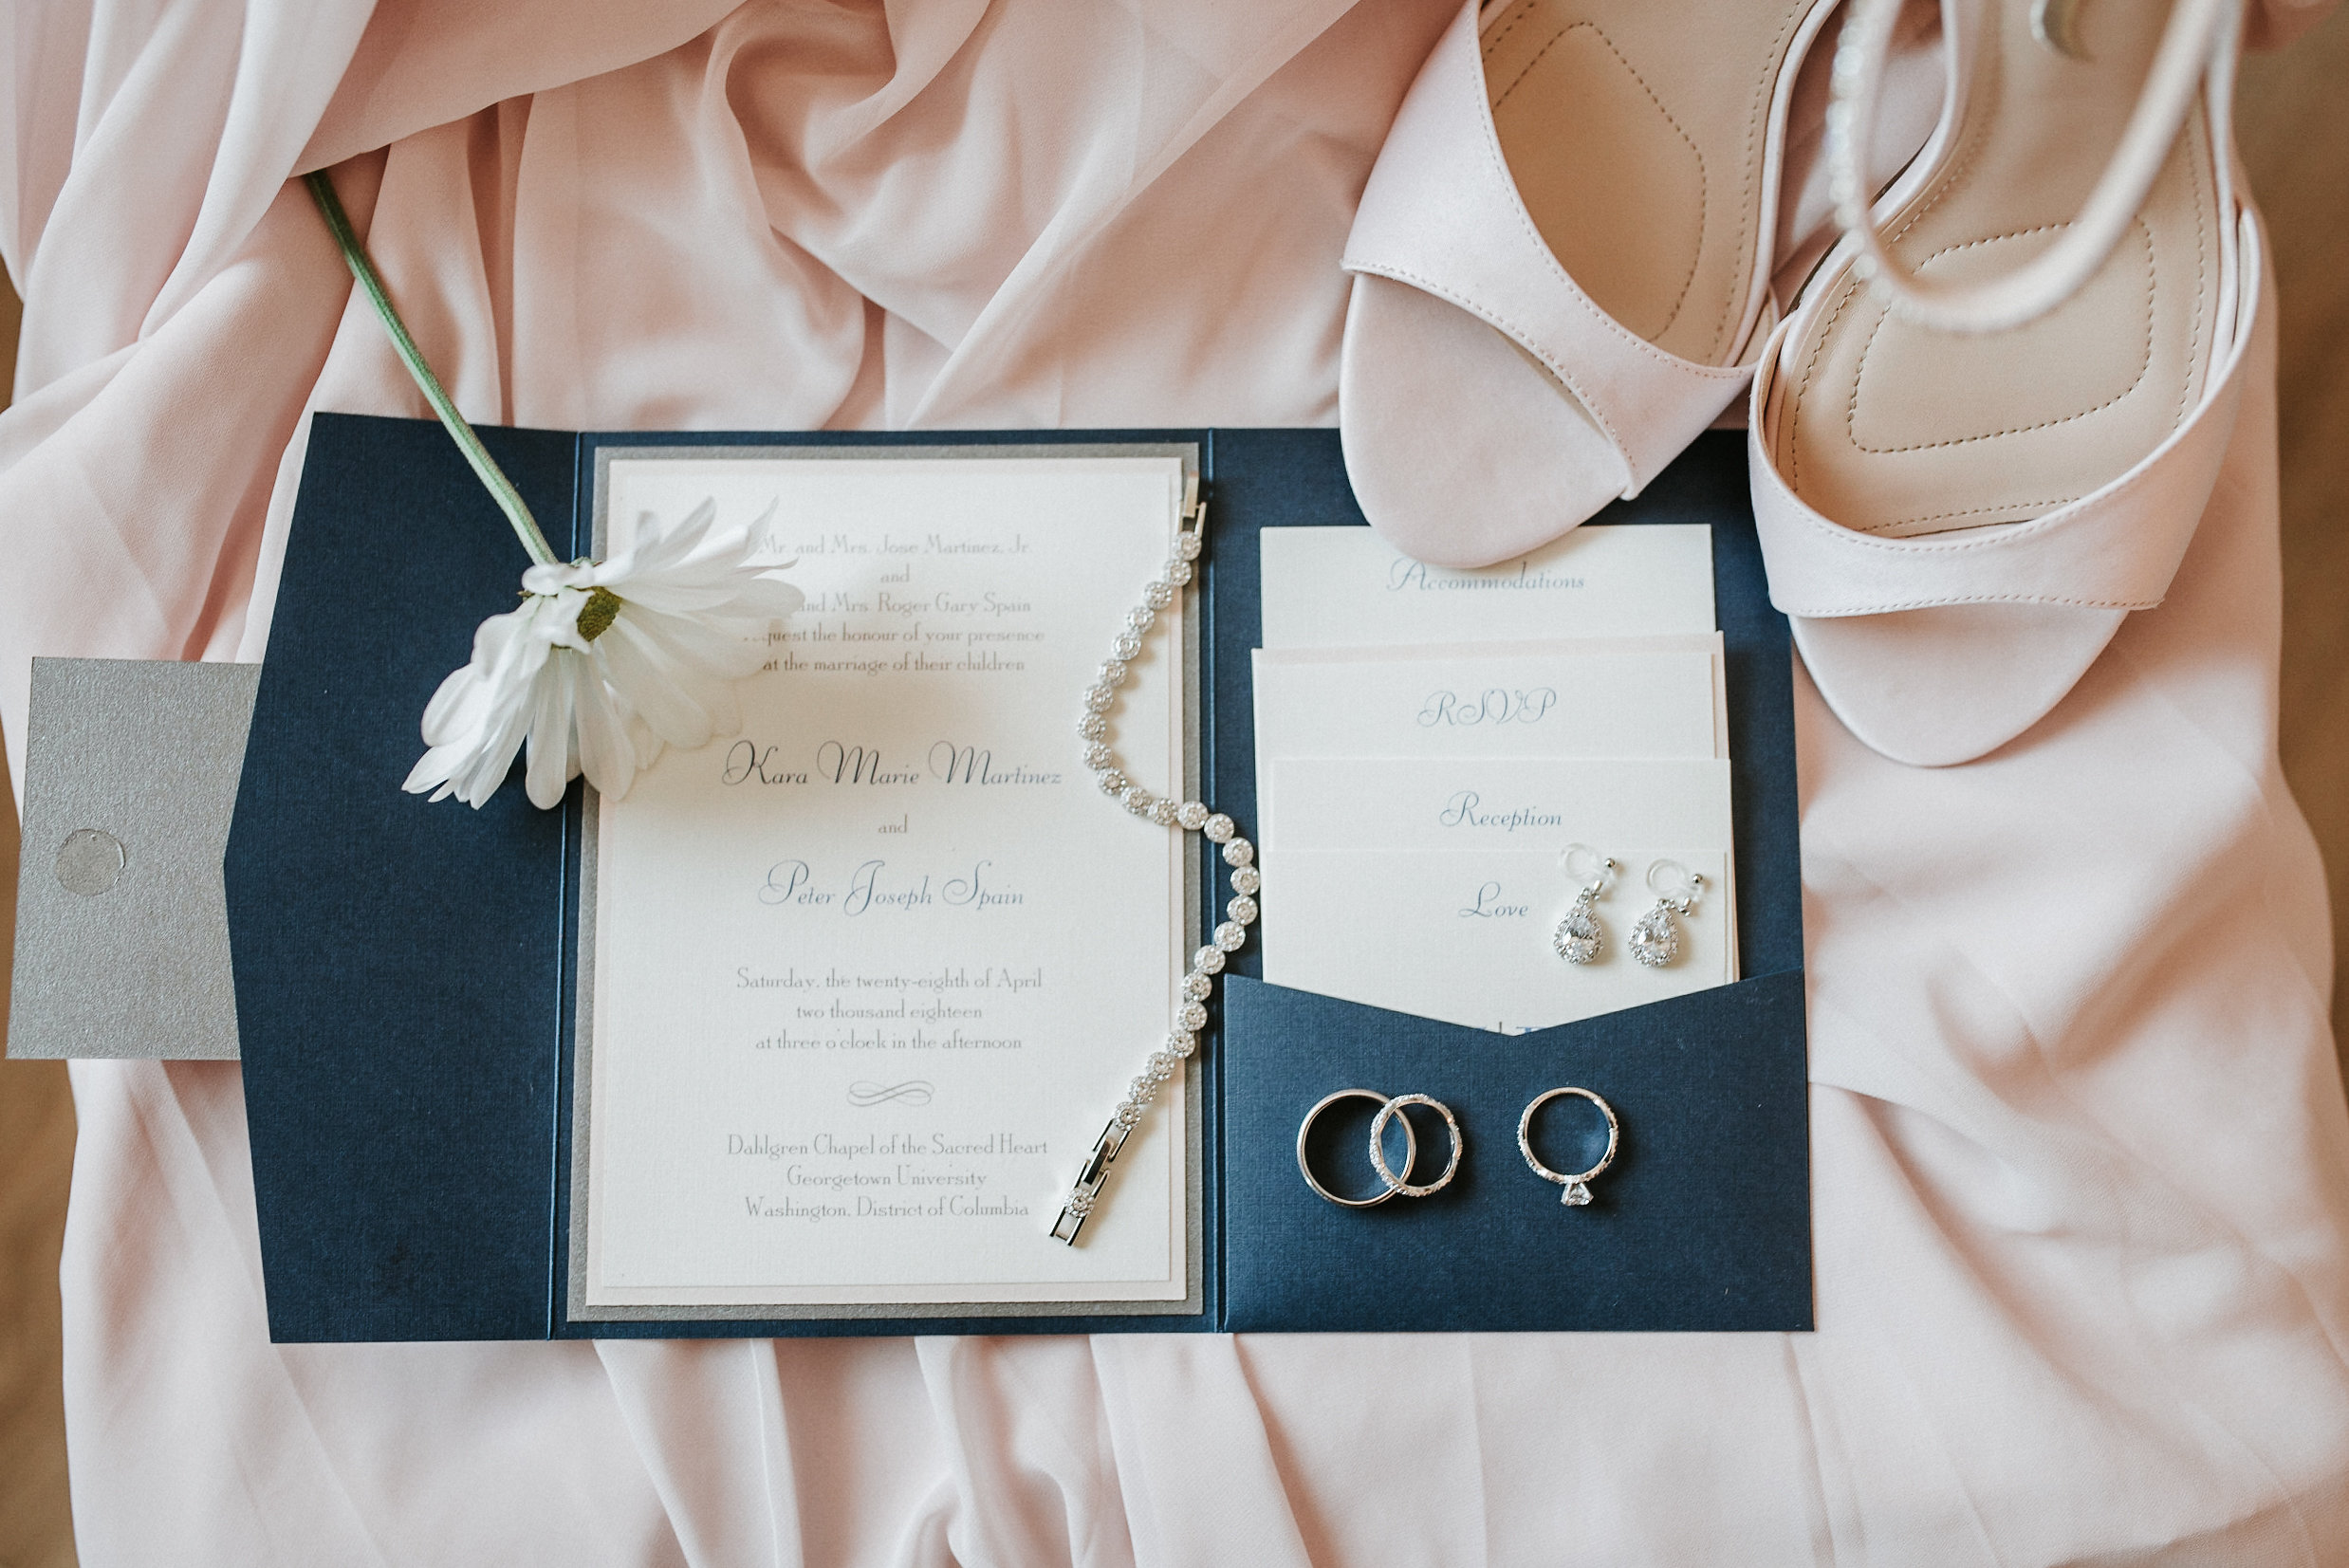 Bridal shoes and jewelry on top of invitation